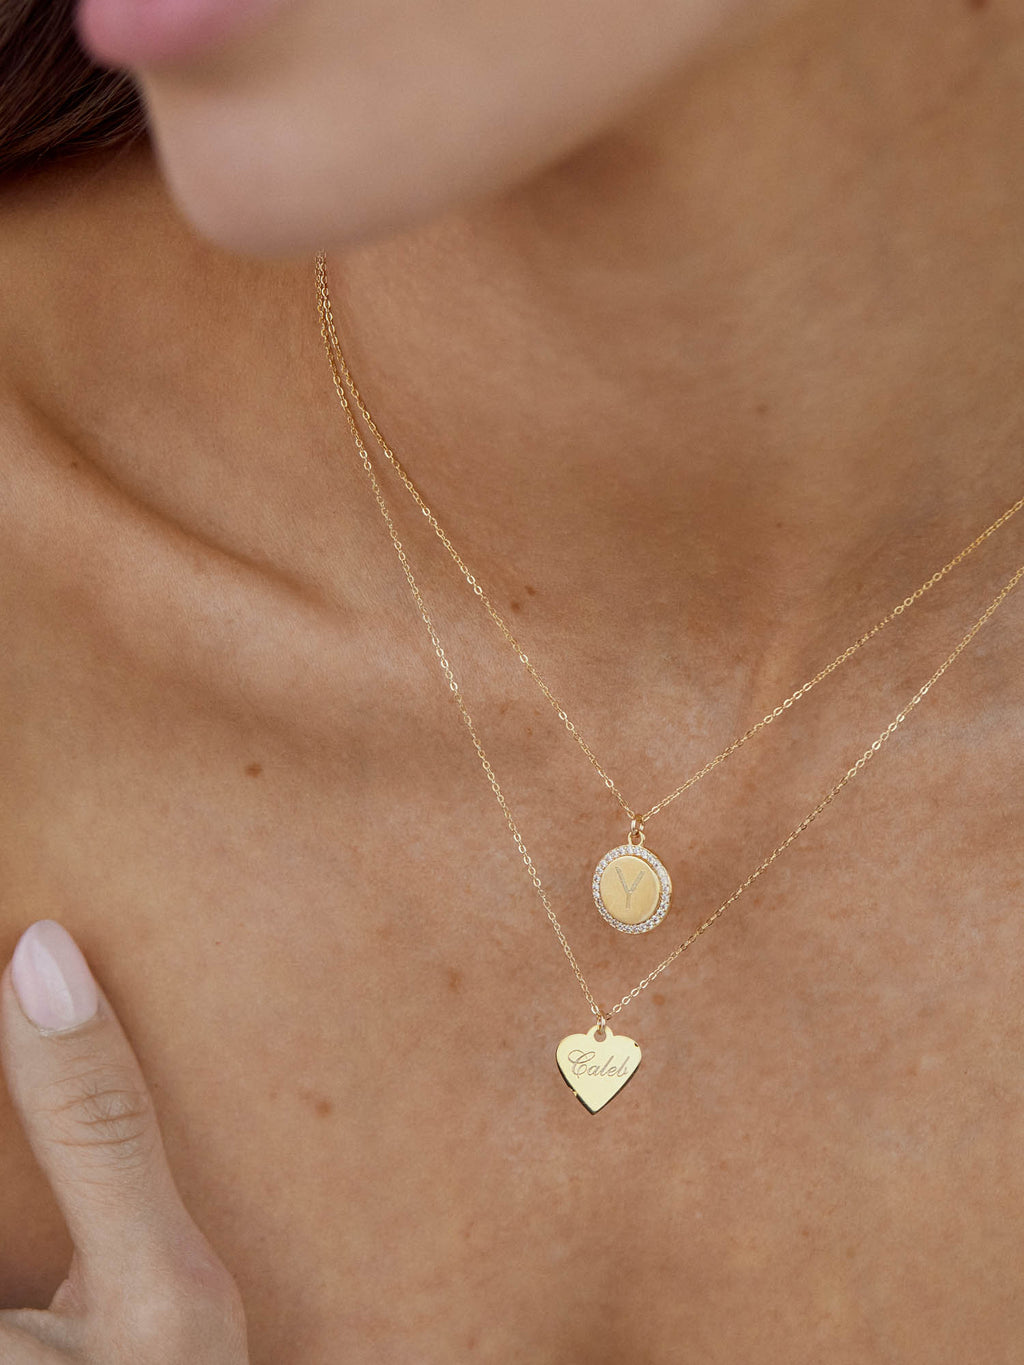 Traditional Engraved Heart Necklace